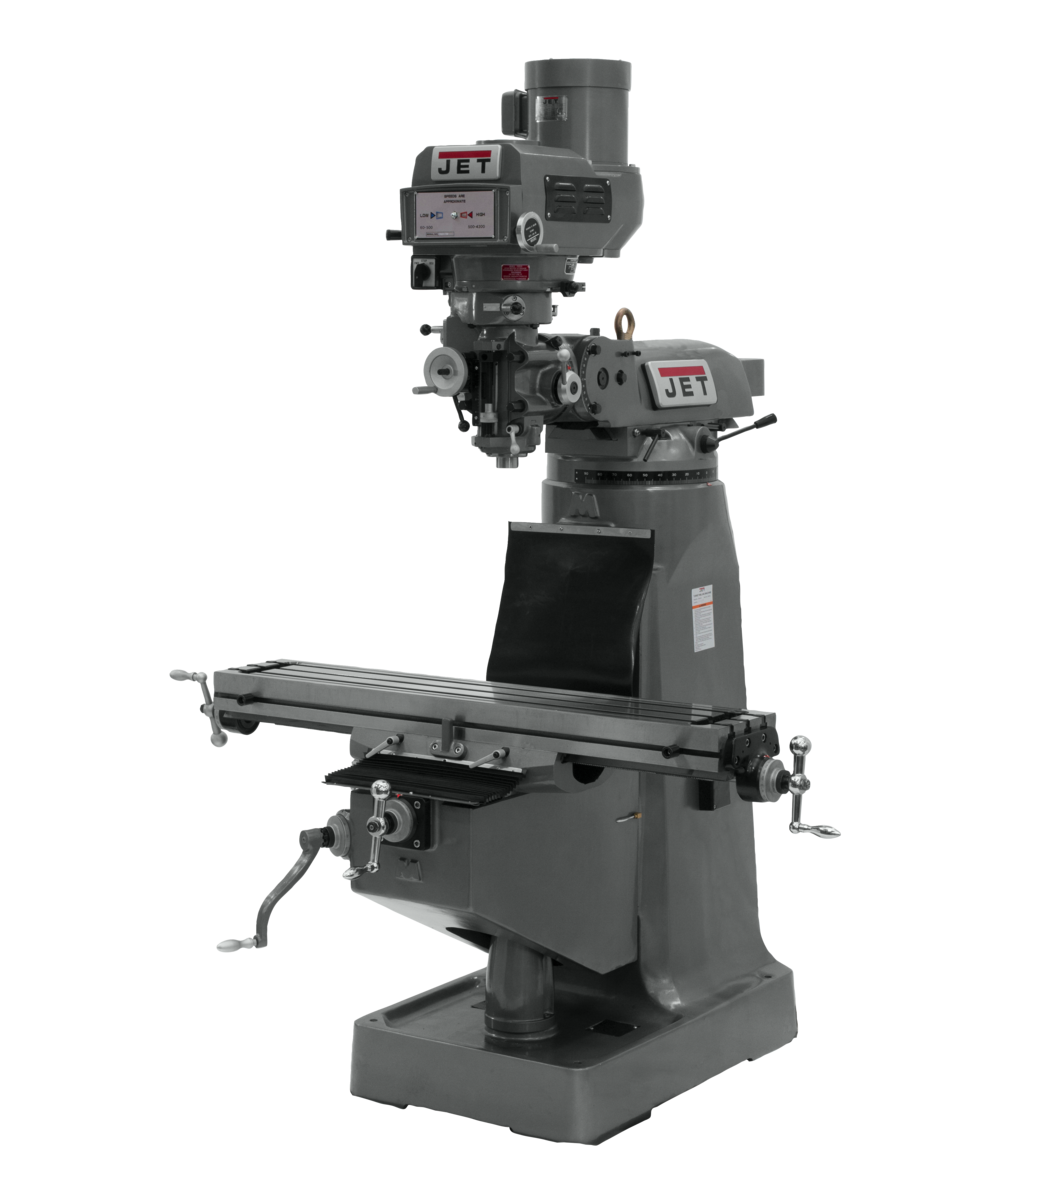 JTM-4VS Mill With 3-Axis ACU-RITE 203 (Knee) and Power Draw Bar